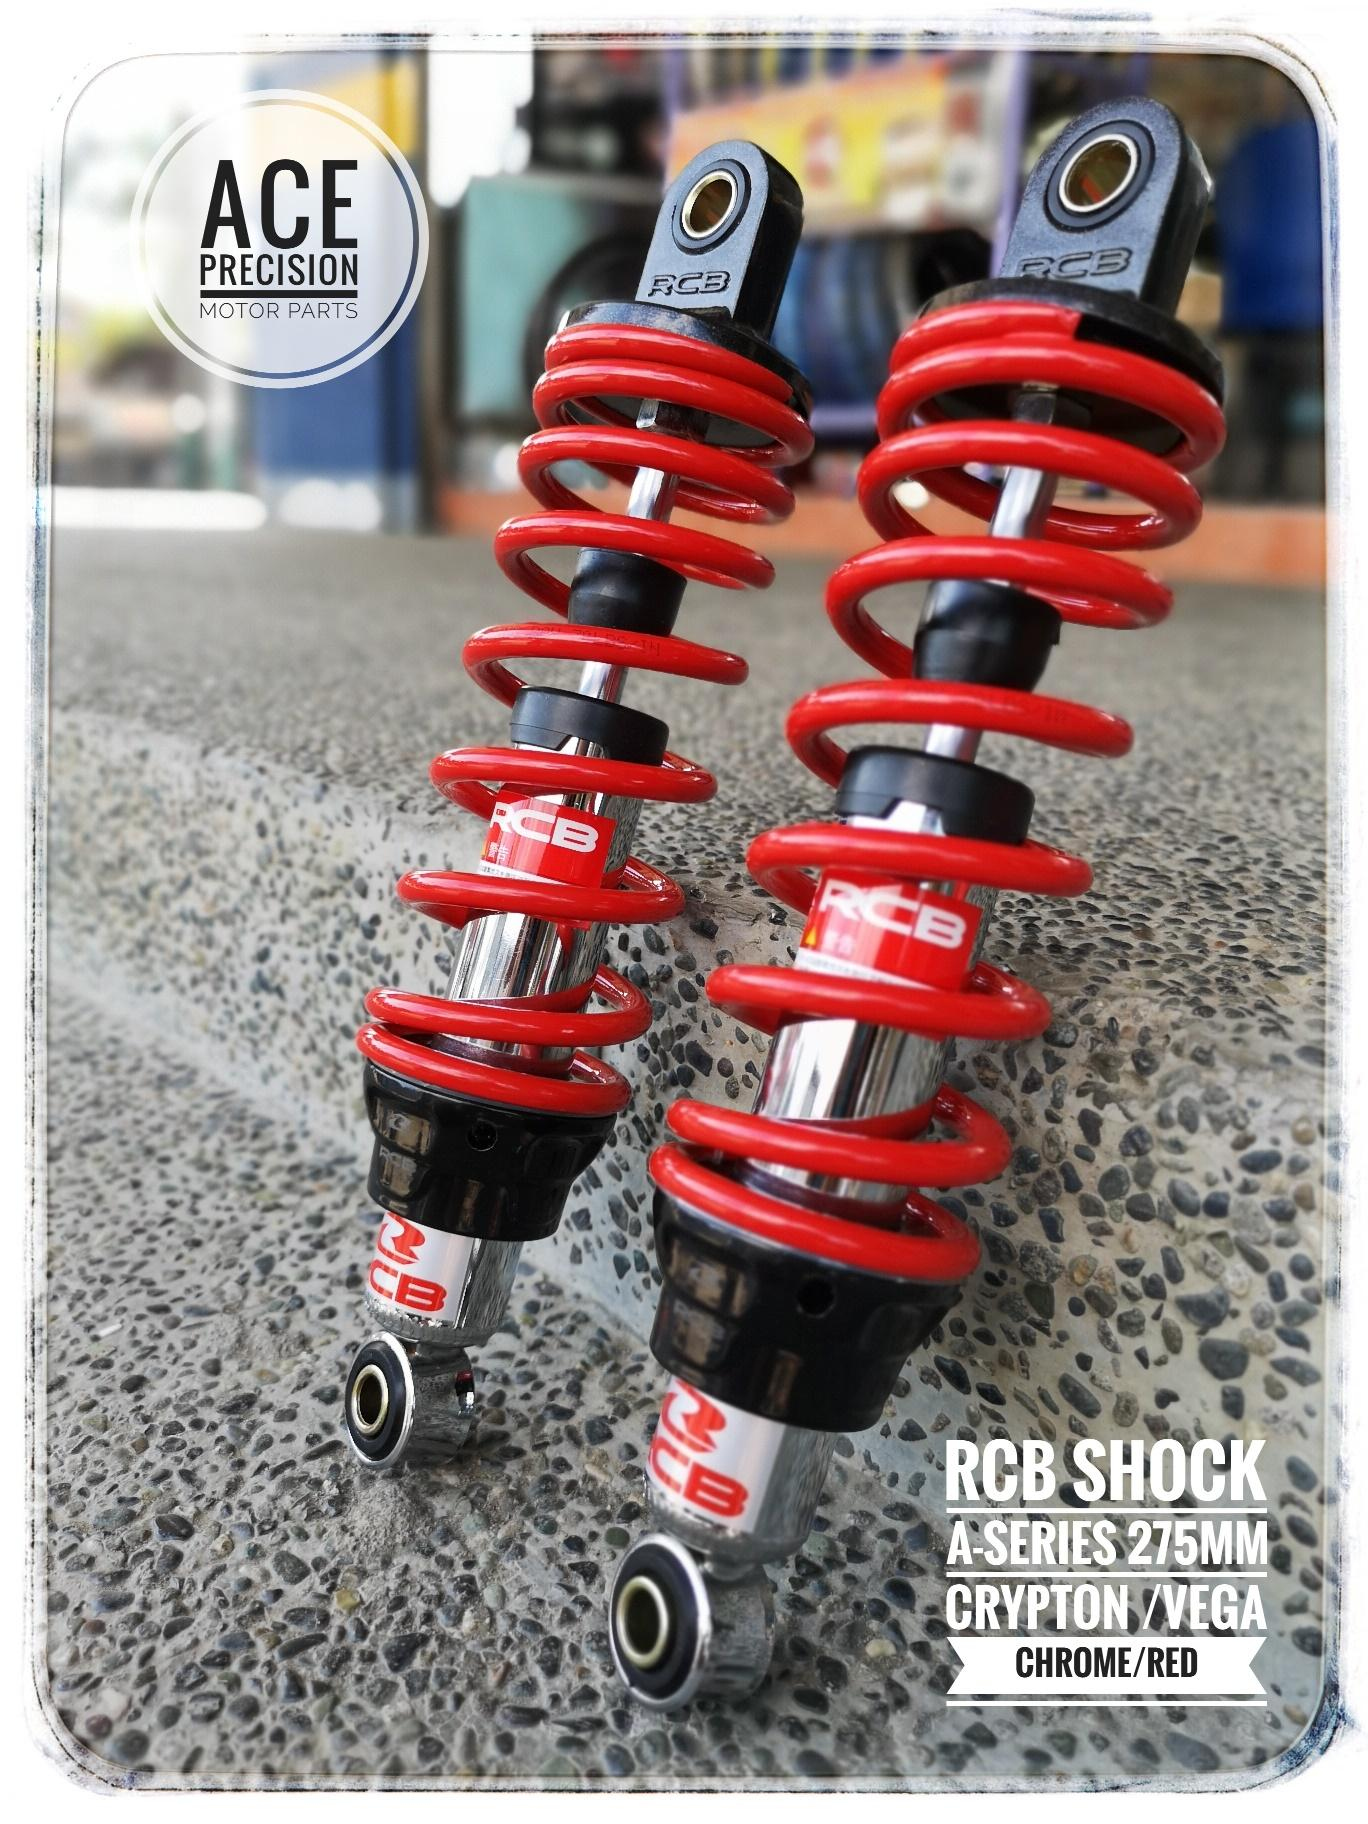 Racing boy dual shock absorber a series 275mm chrome red